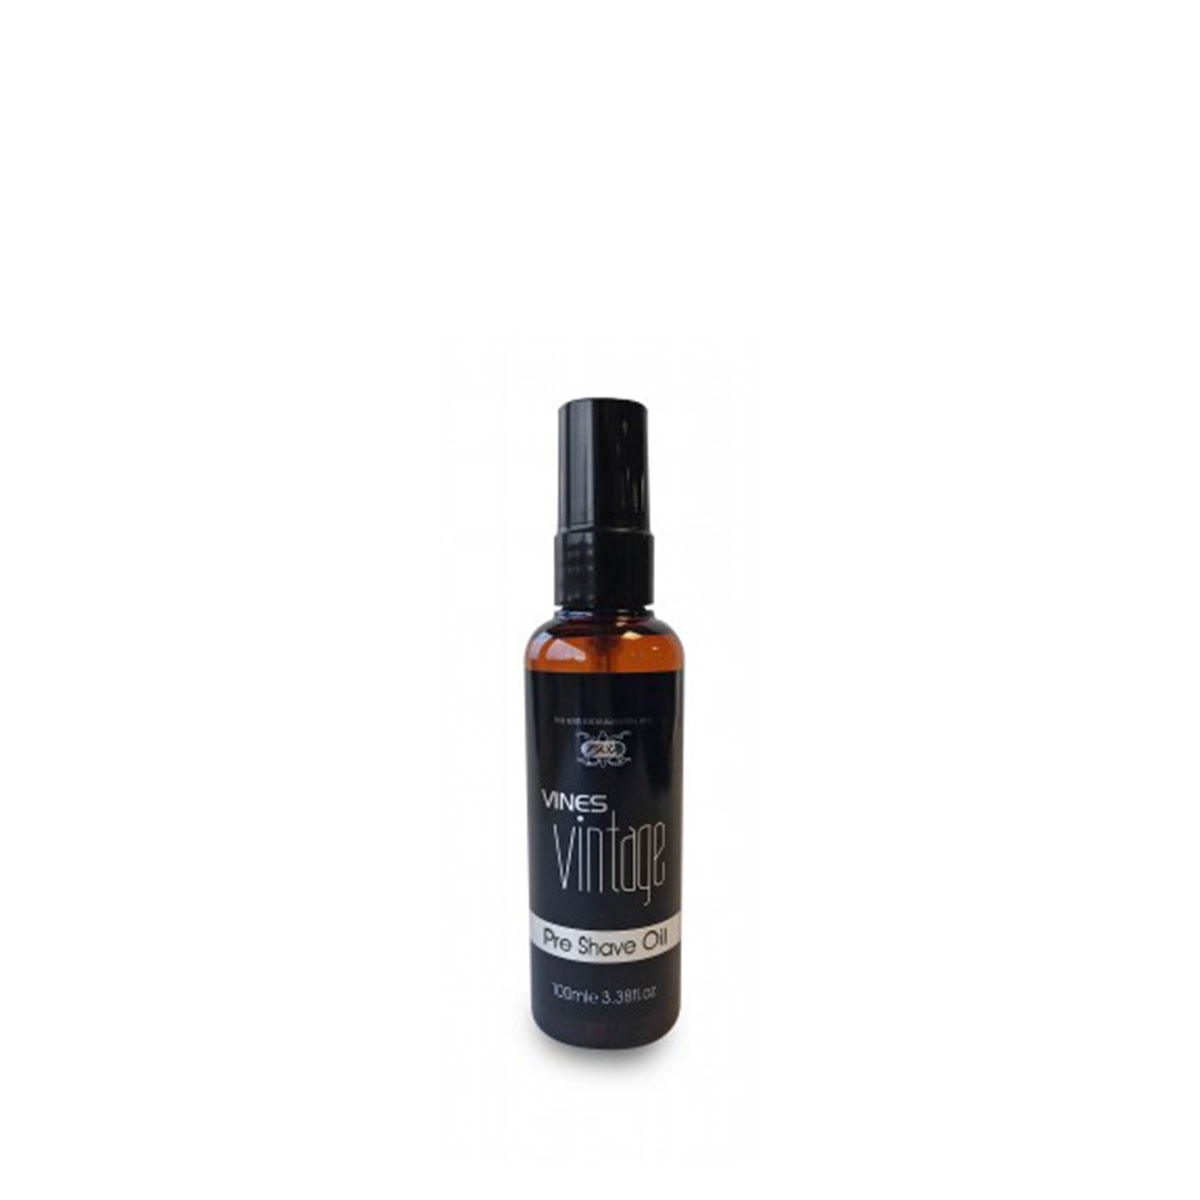 Pre Shave Oil 100ml Vines Vintage